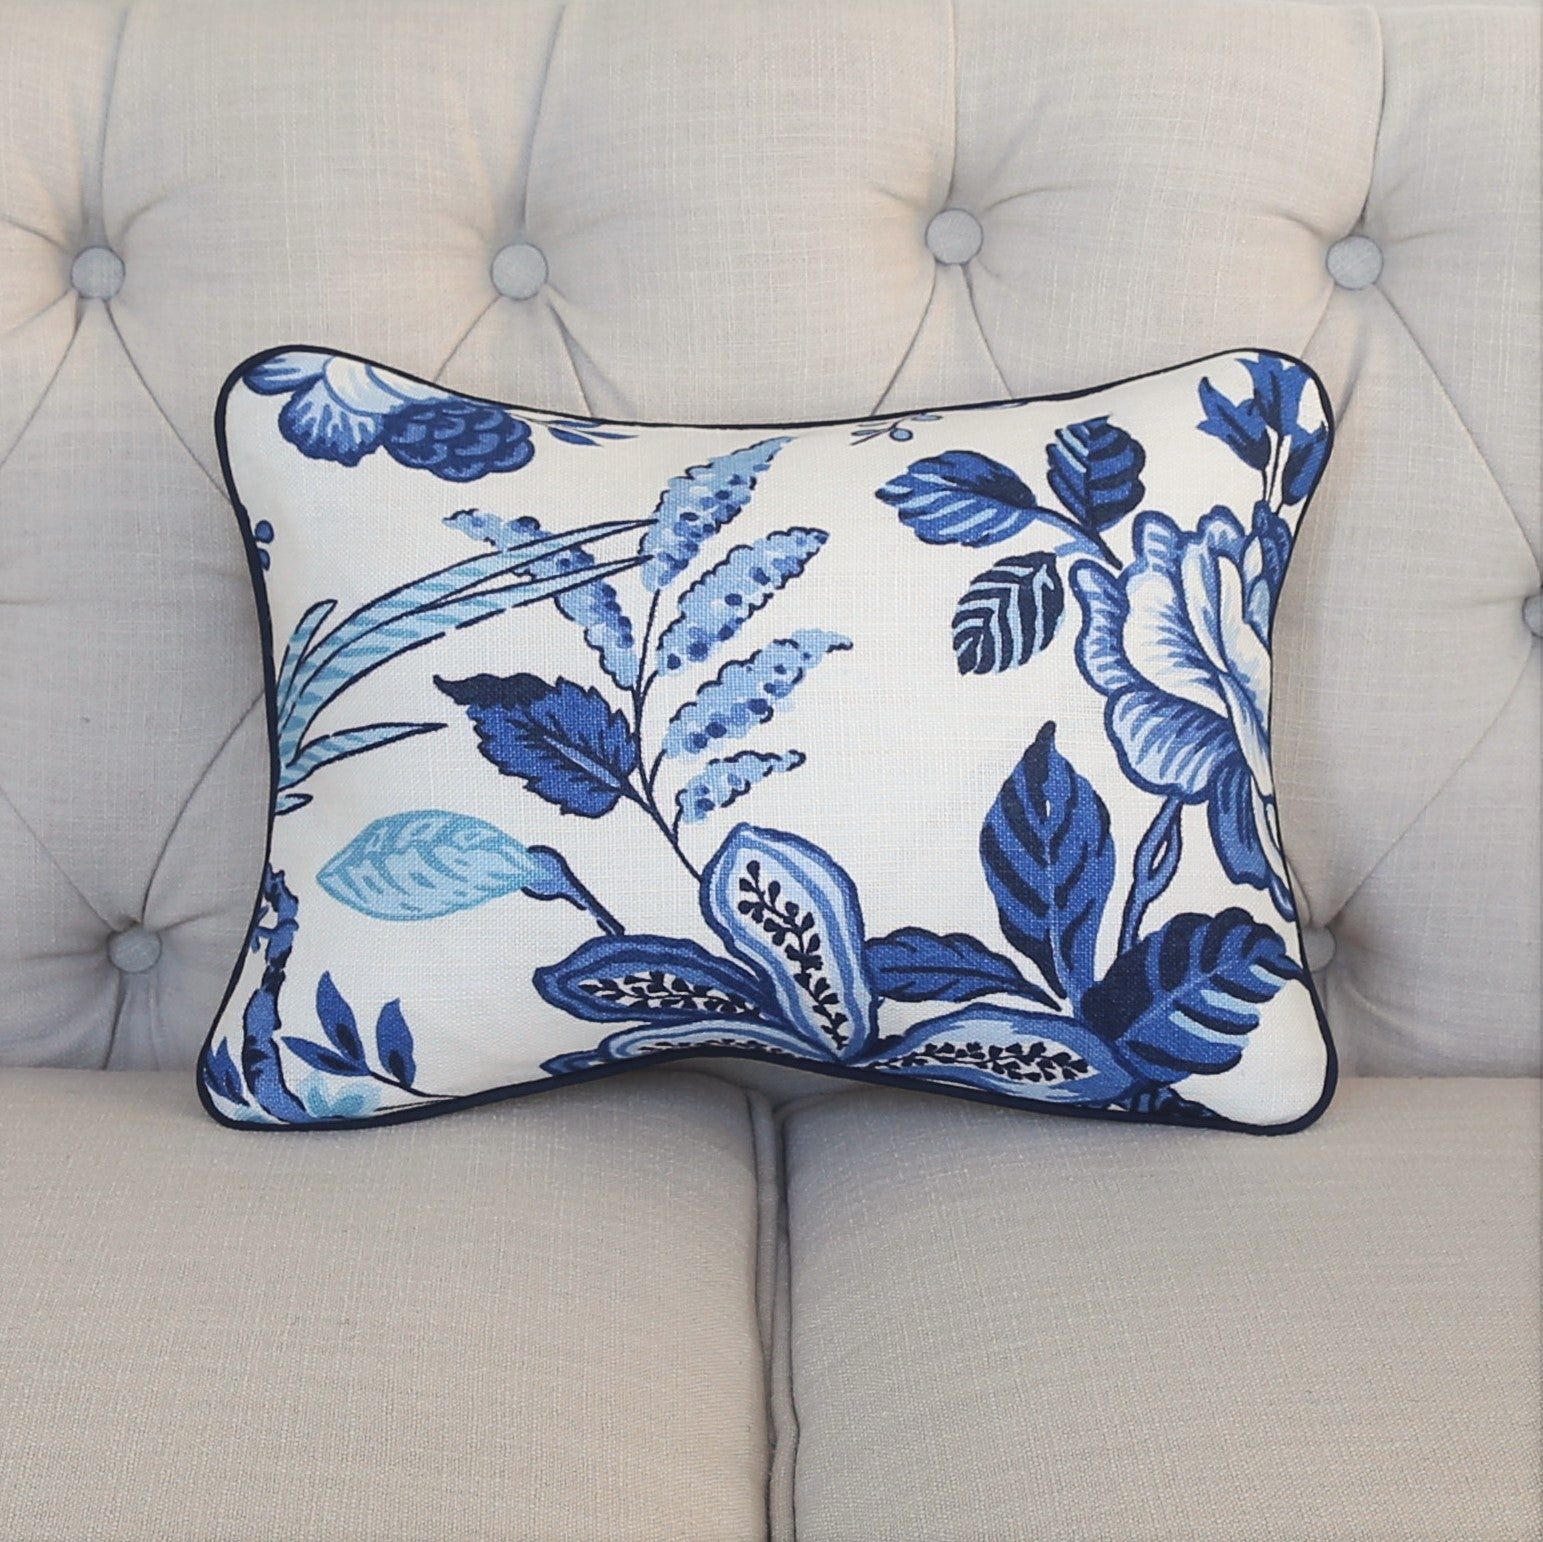 READY TO SHIP - Huntington Gardens Bleu Marine with Navy Piping 11x15